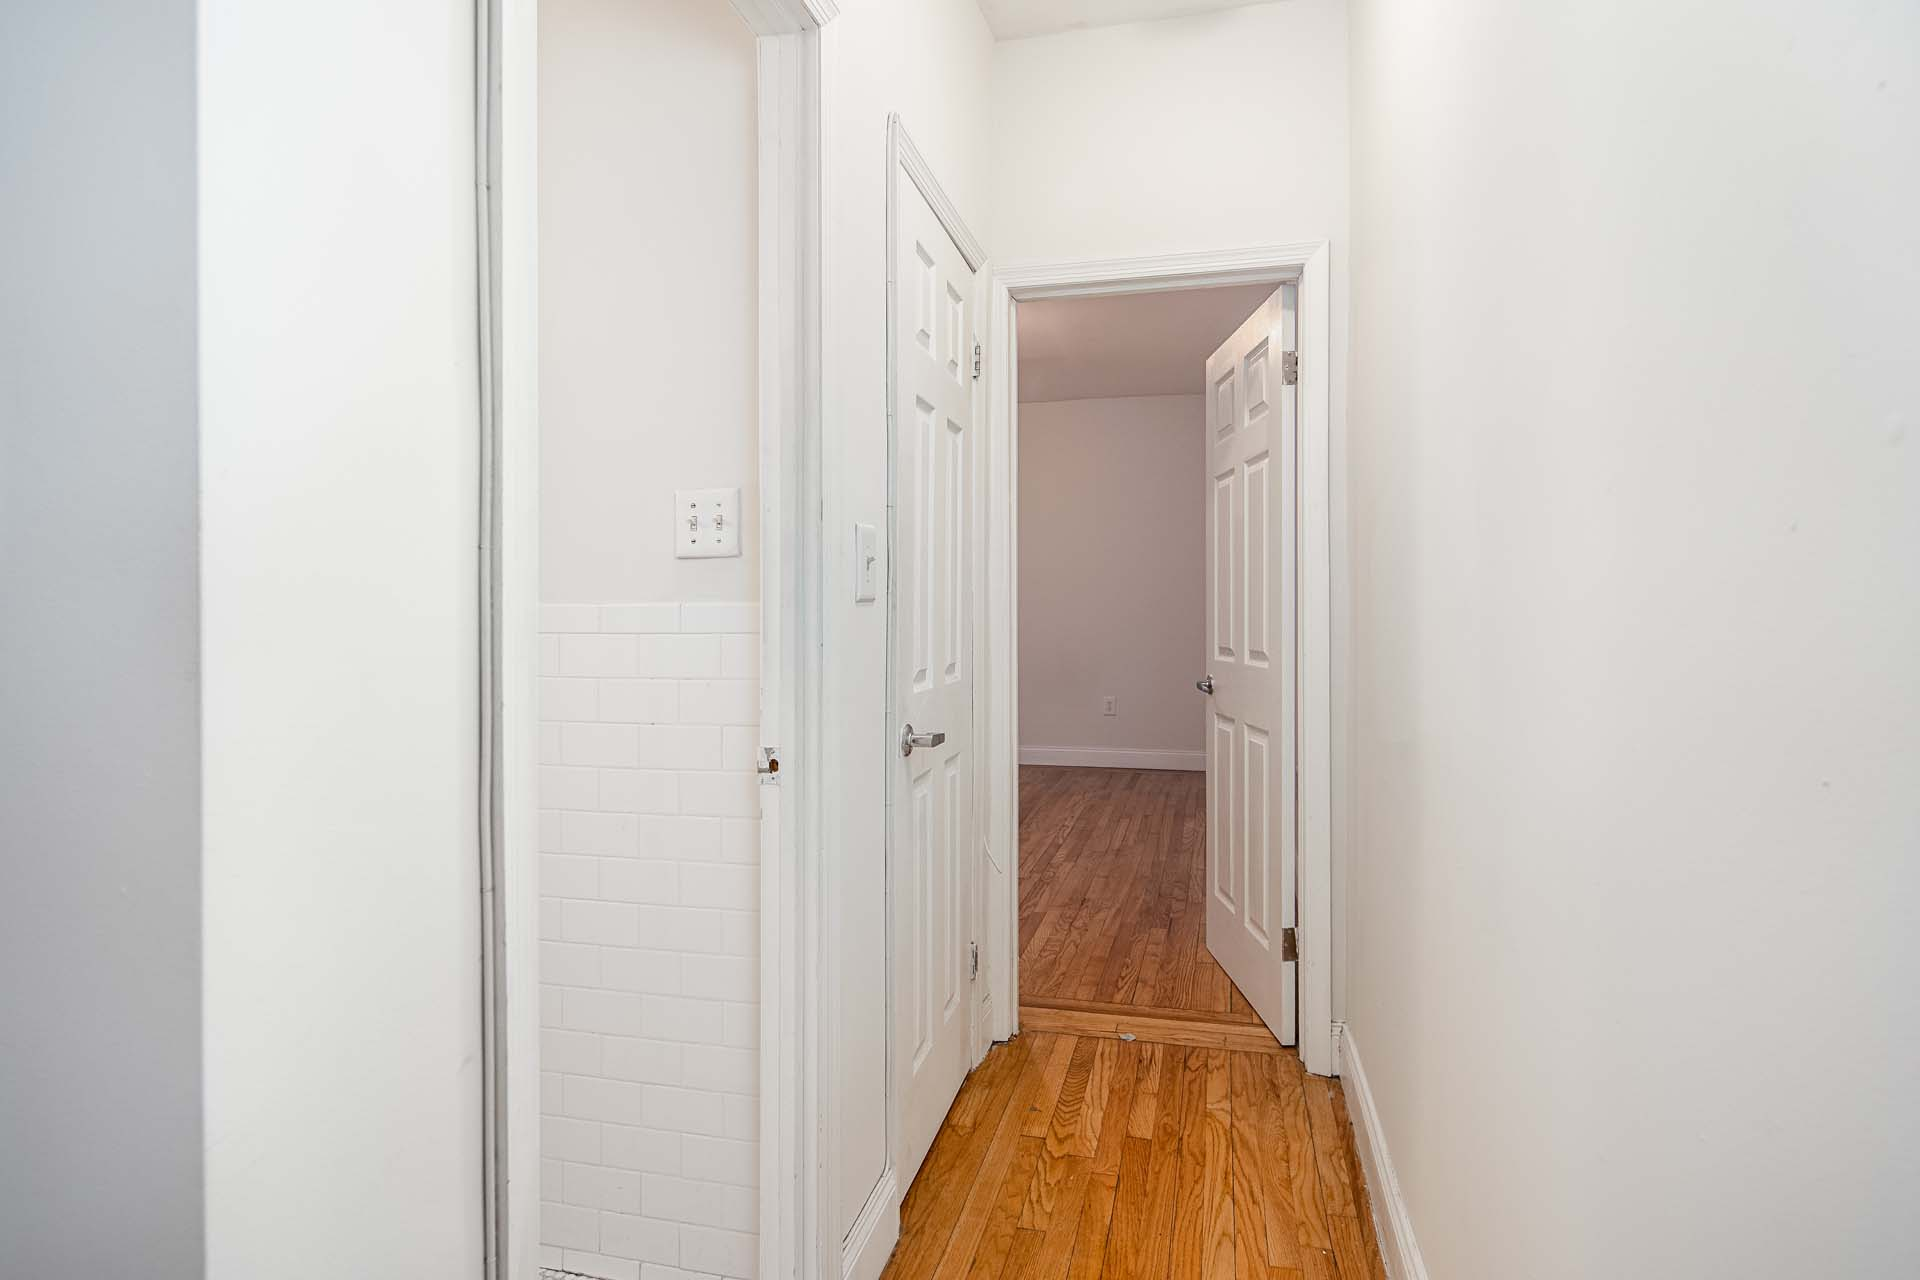 jersey city apartments for rent nj